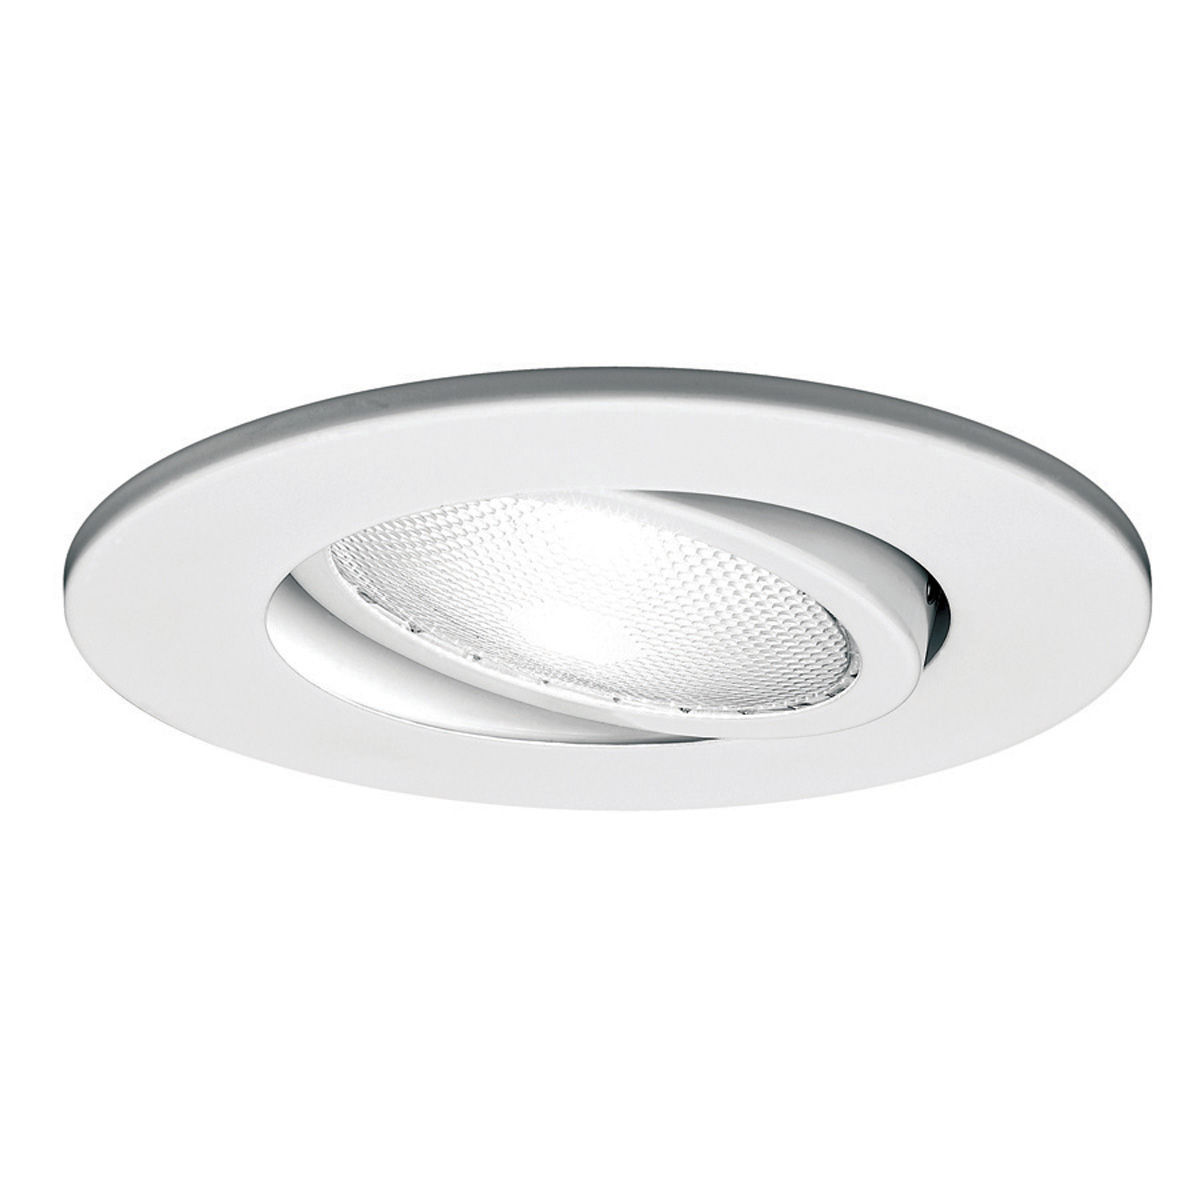 Recessed ceiling spotlight indoor halogen round r 532 recessed ceiling spotlight indoor halogen round r 532 wac lighting mozeypictures Choice Image